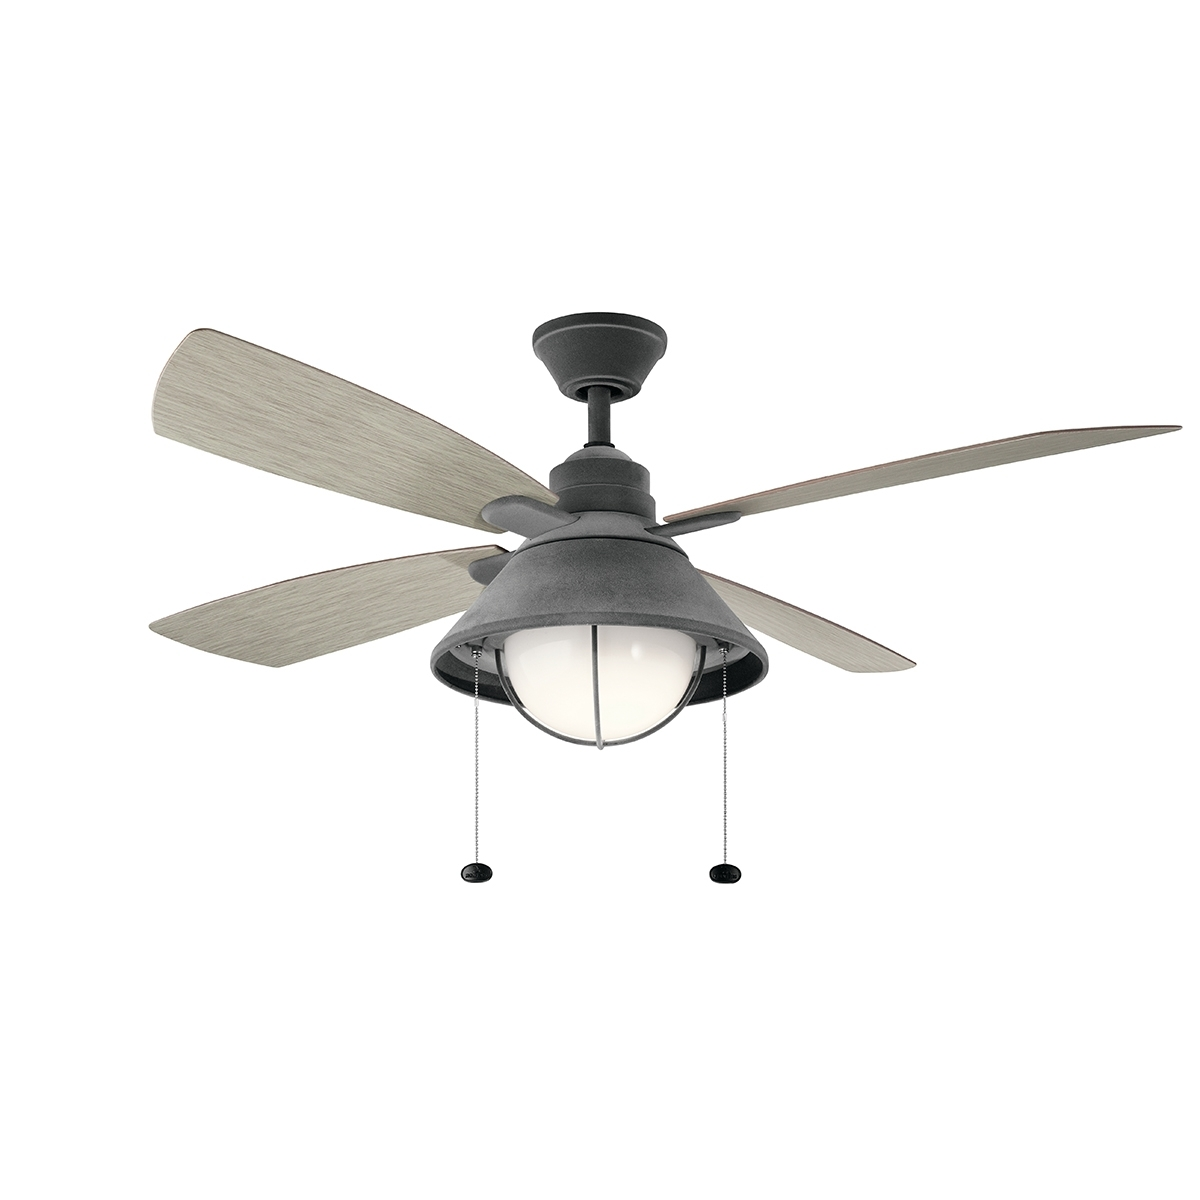 310181Wzc With Regard To Kichler Outdoor Ceiling Fans With Lights (View 3 of 20)